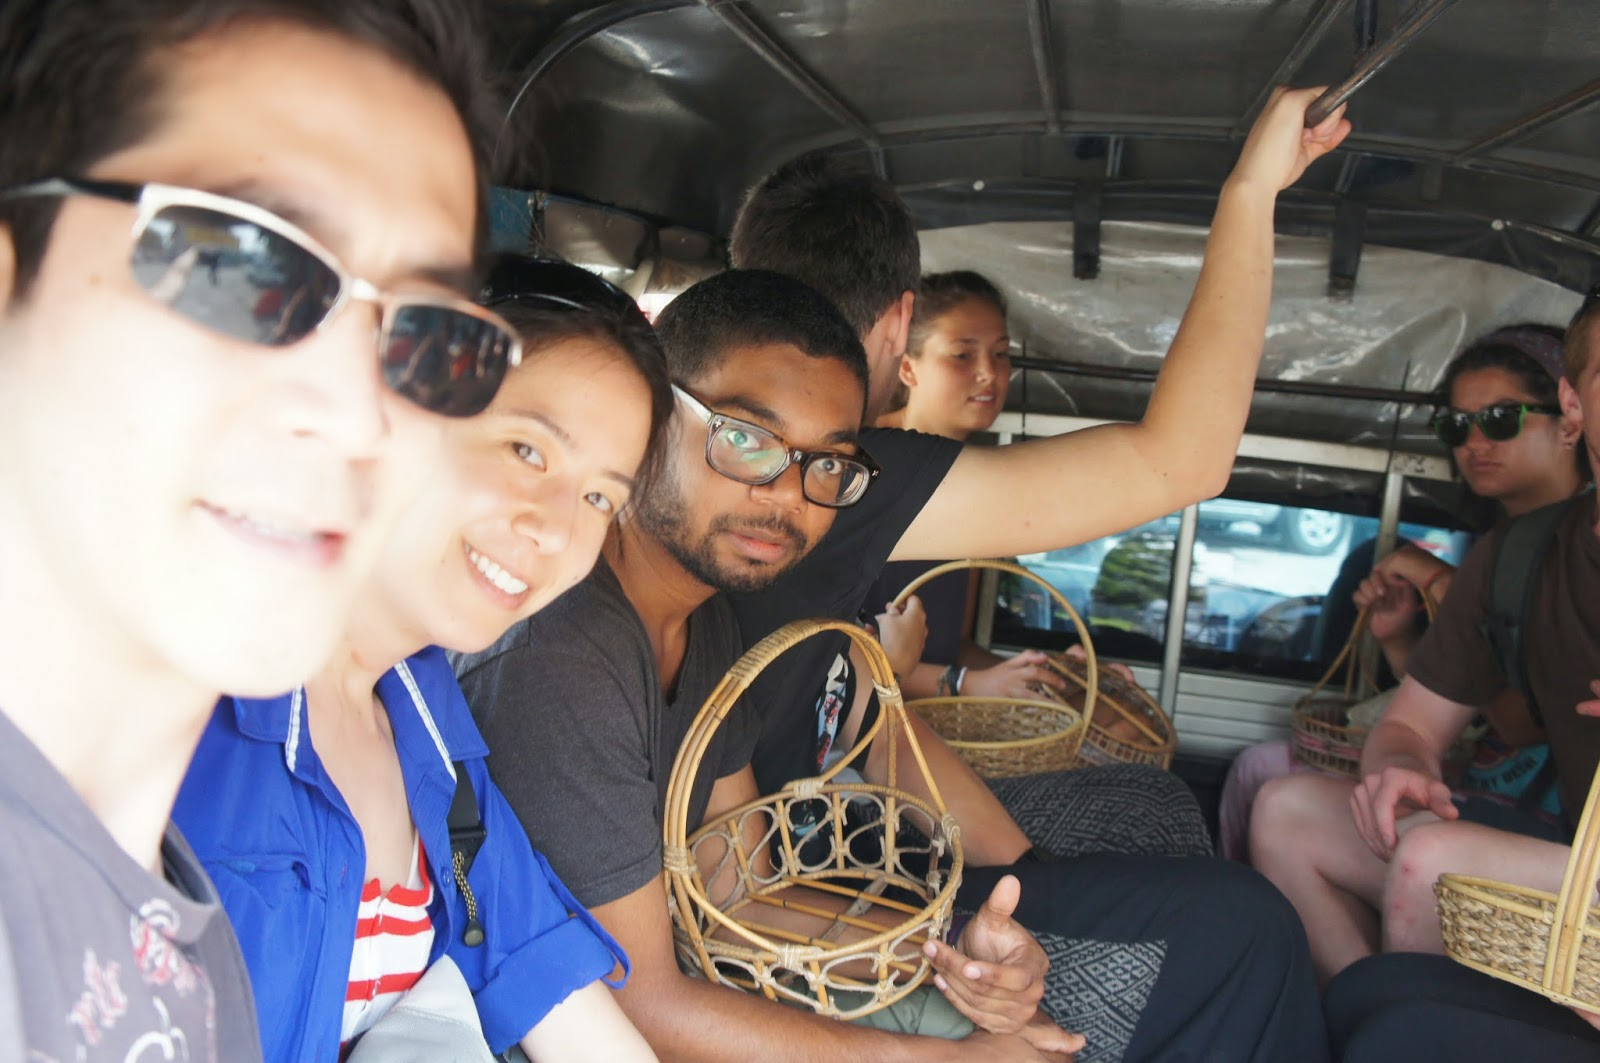 Chiang Mai - Heading to the market to shop for ingredients